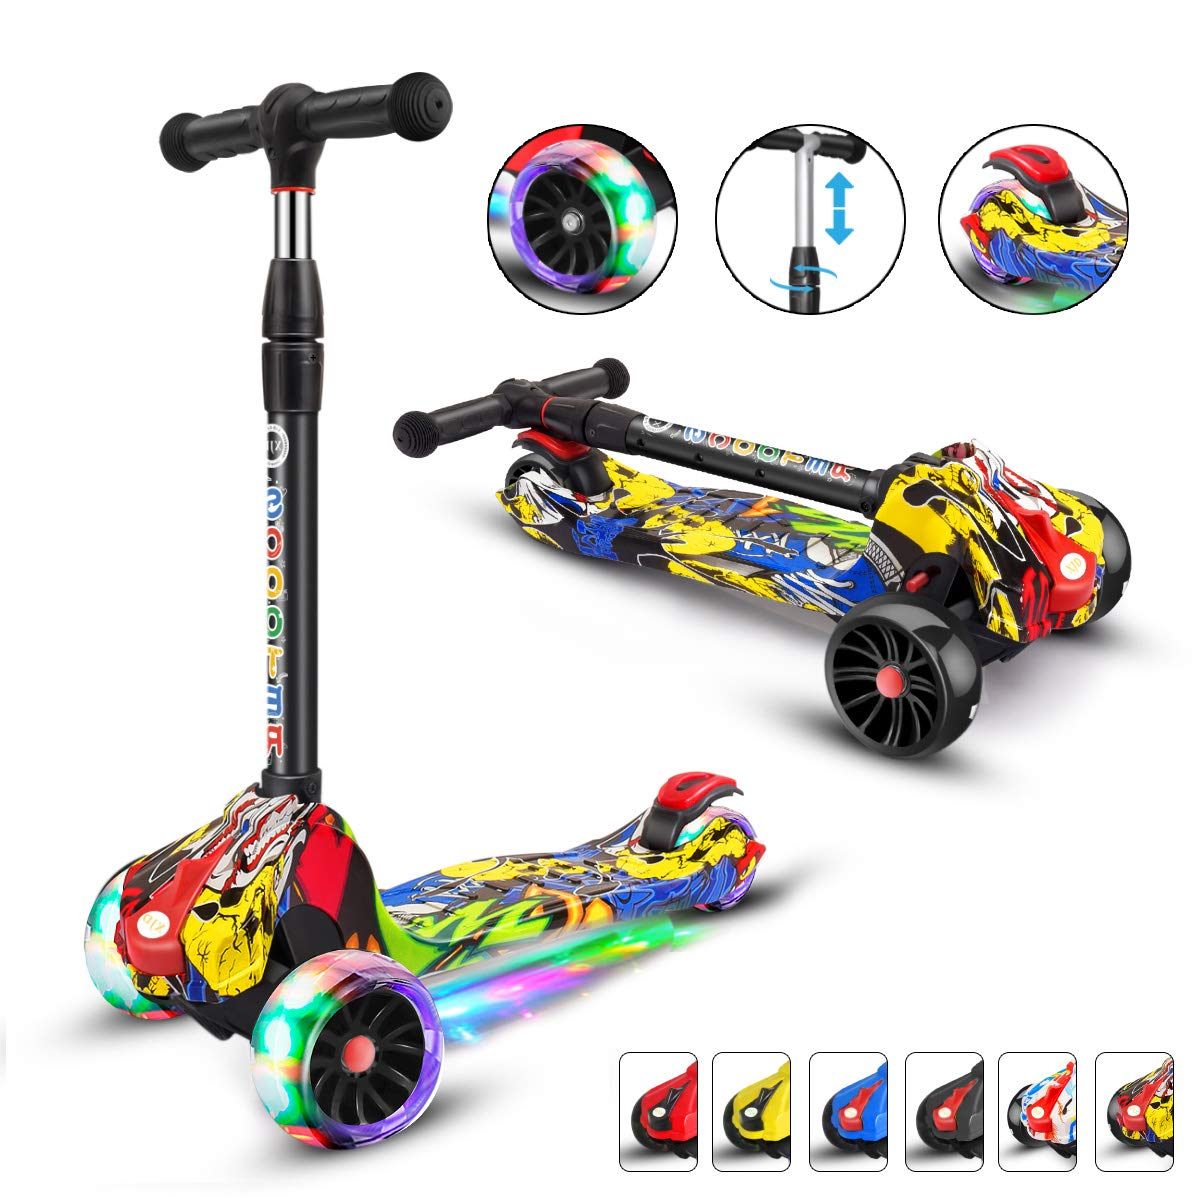 XJD Kick Scooter for Kids 3 Wheel Scooter for Toddlers Girls & Boys, 4 Adjustable Height, Extra-Wide Deck, with Max Glider Deluxe PU Flashing Wheels for Children from 3 to 14 Year-Old, Hip-Pop by XJD